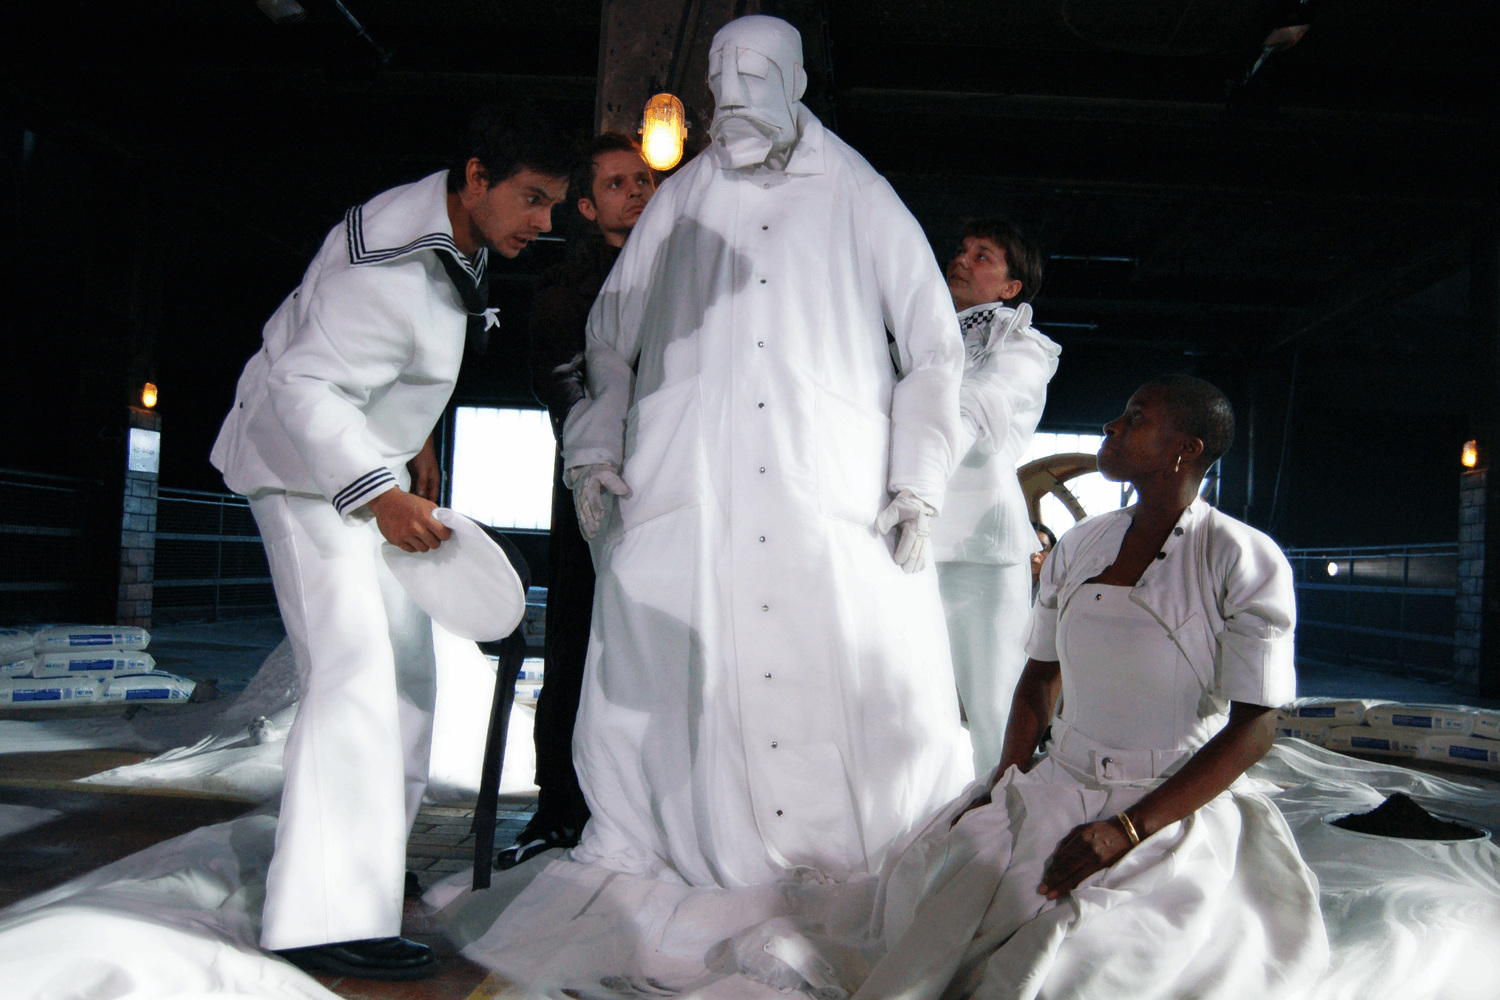 a 7 foot tall white coated puppet, with a beautiful face made out of fabric, is surrounded by performers sitting in salt